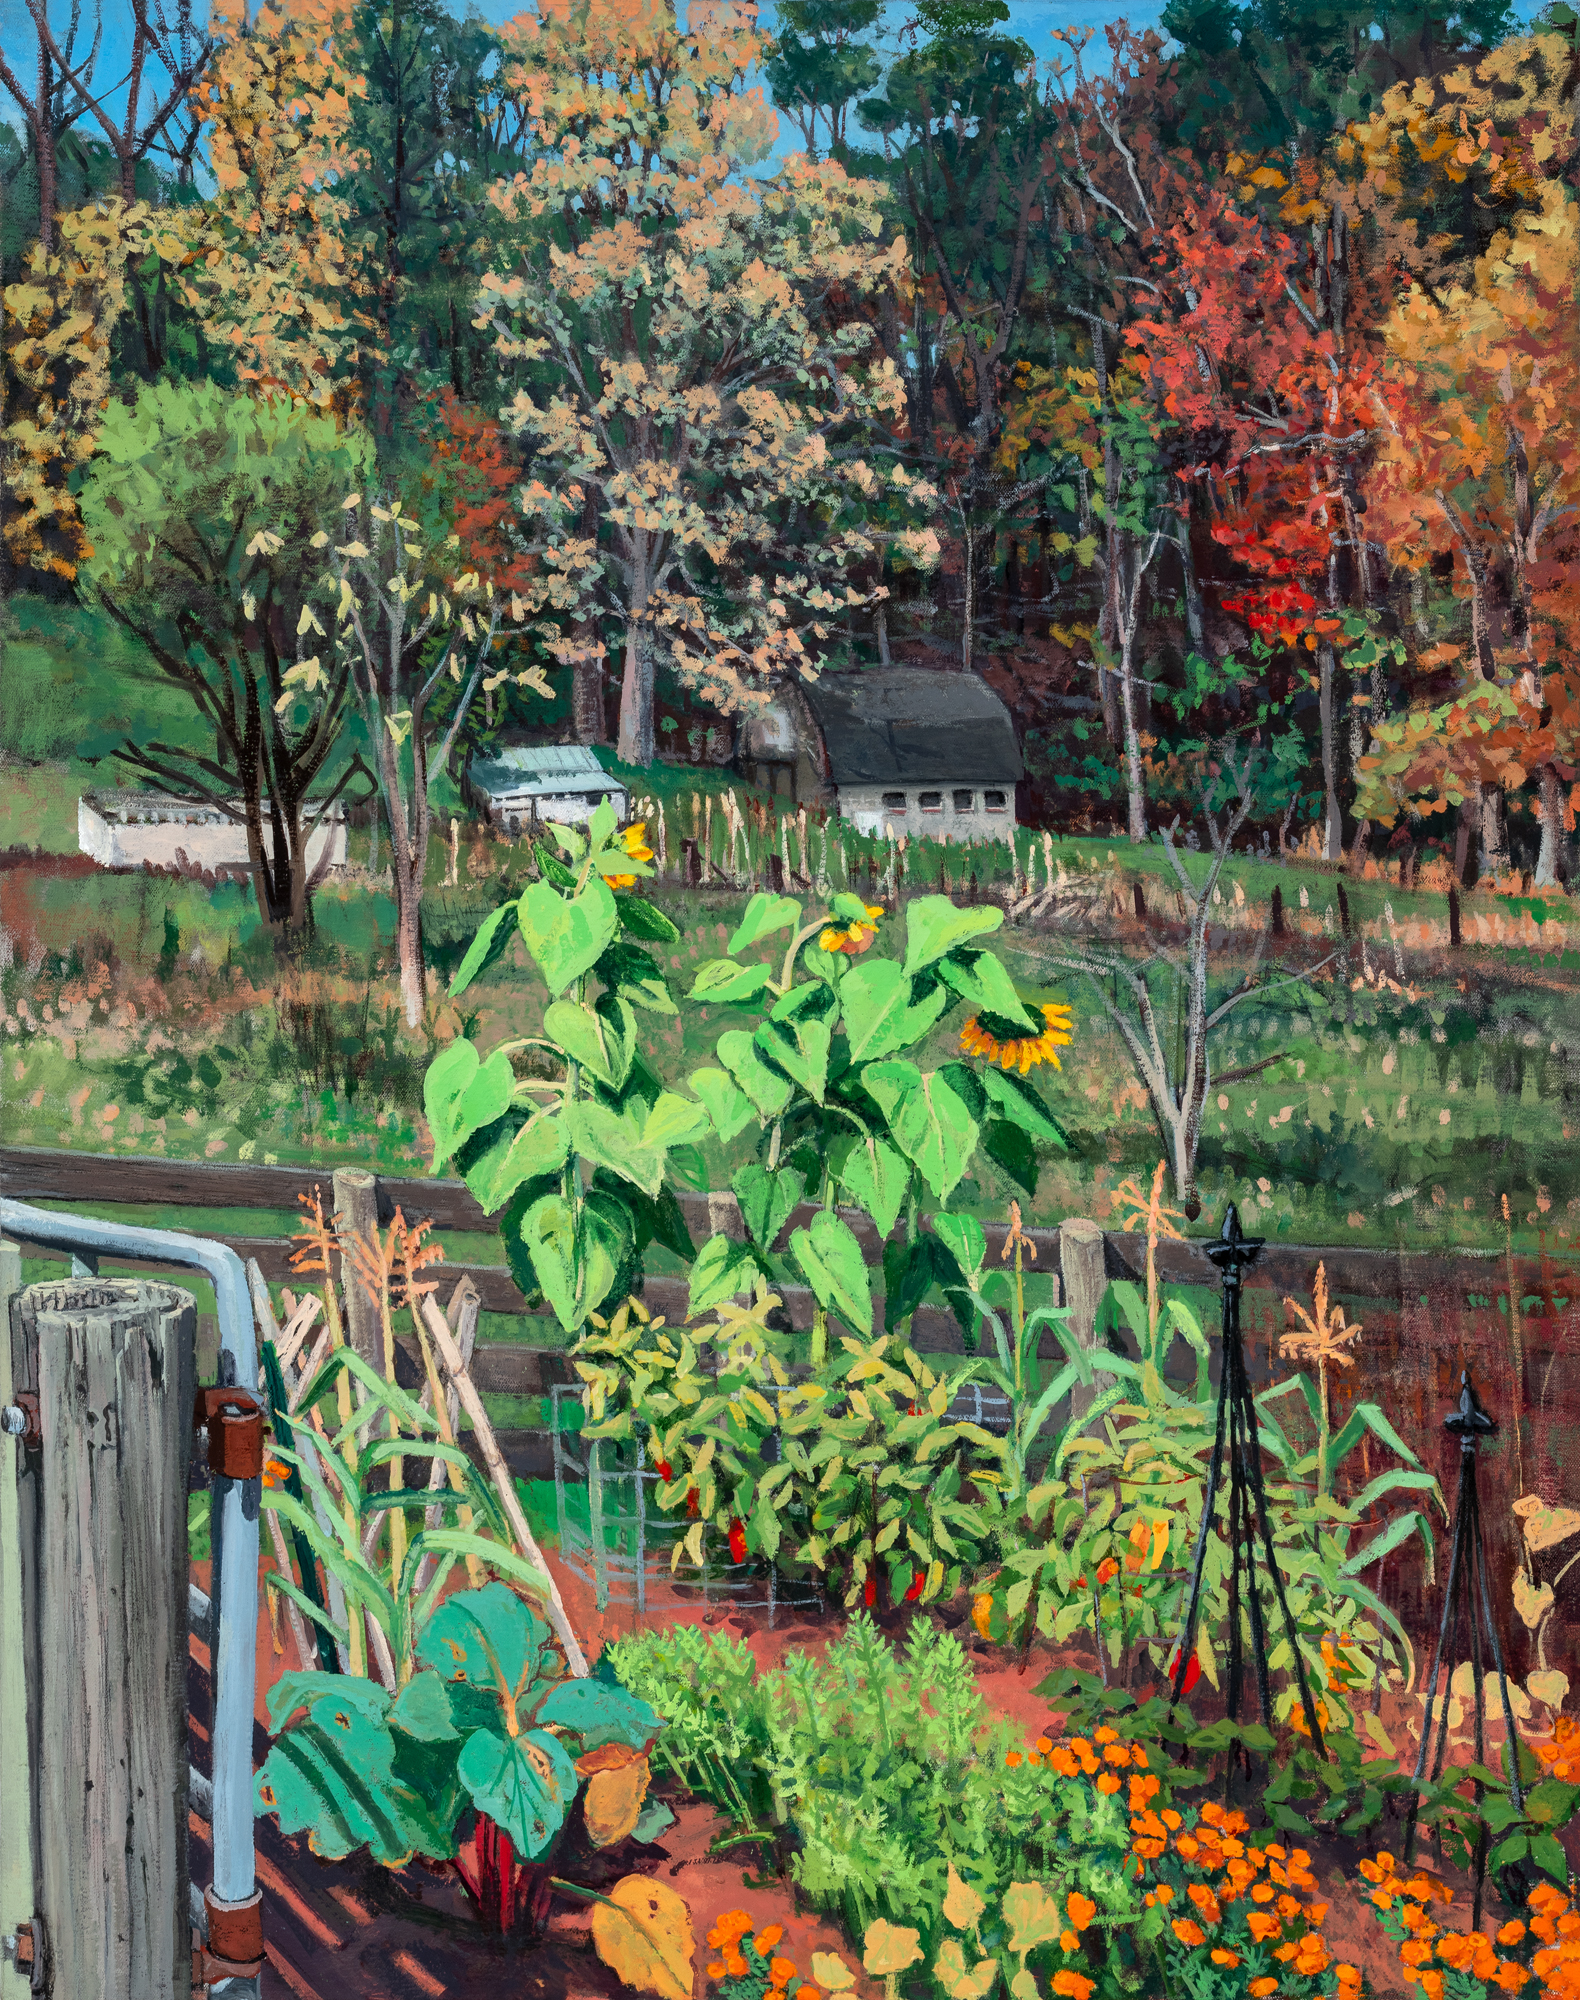 Oil on Canvas Painting of the artist's garden with Fall trees and sunflowers